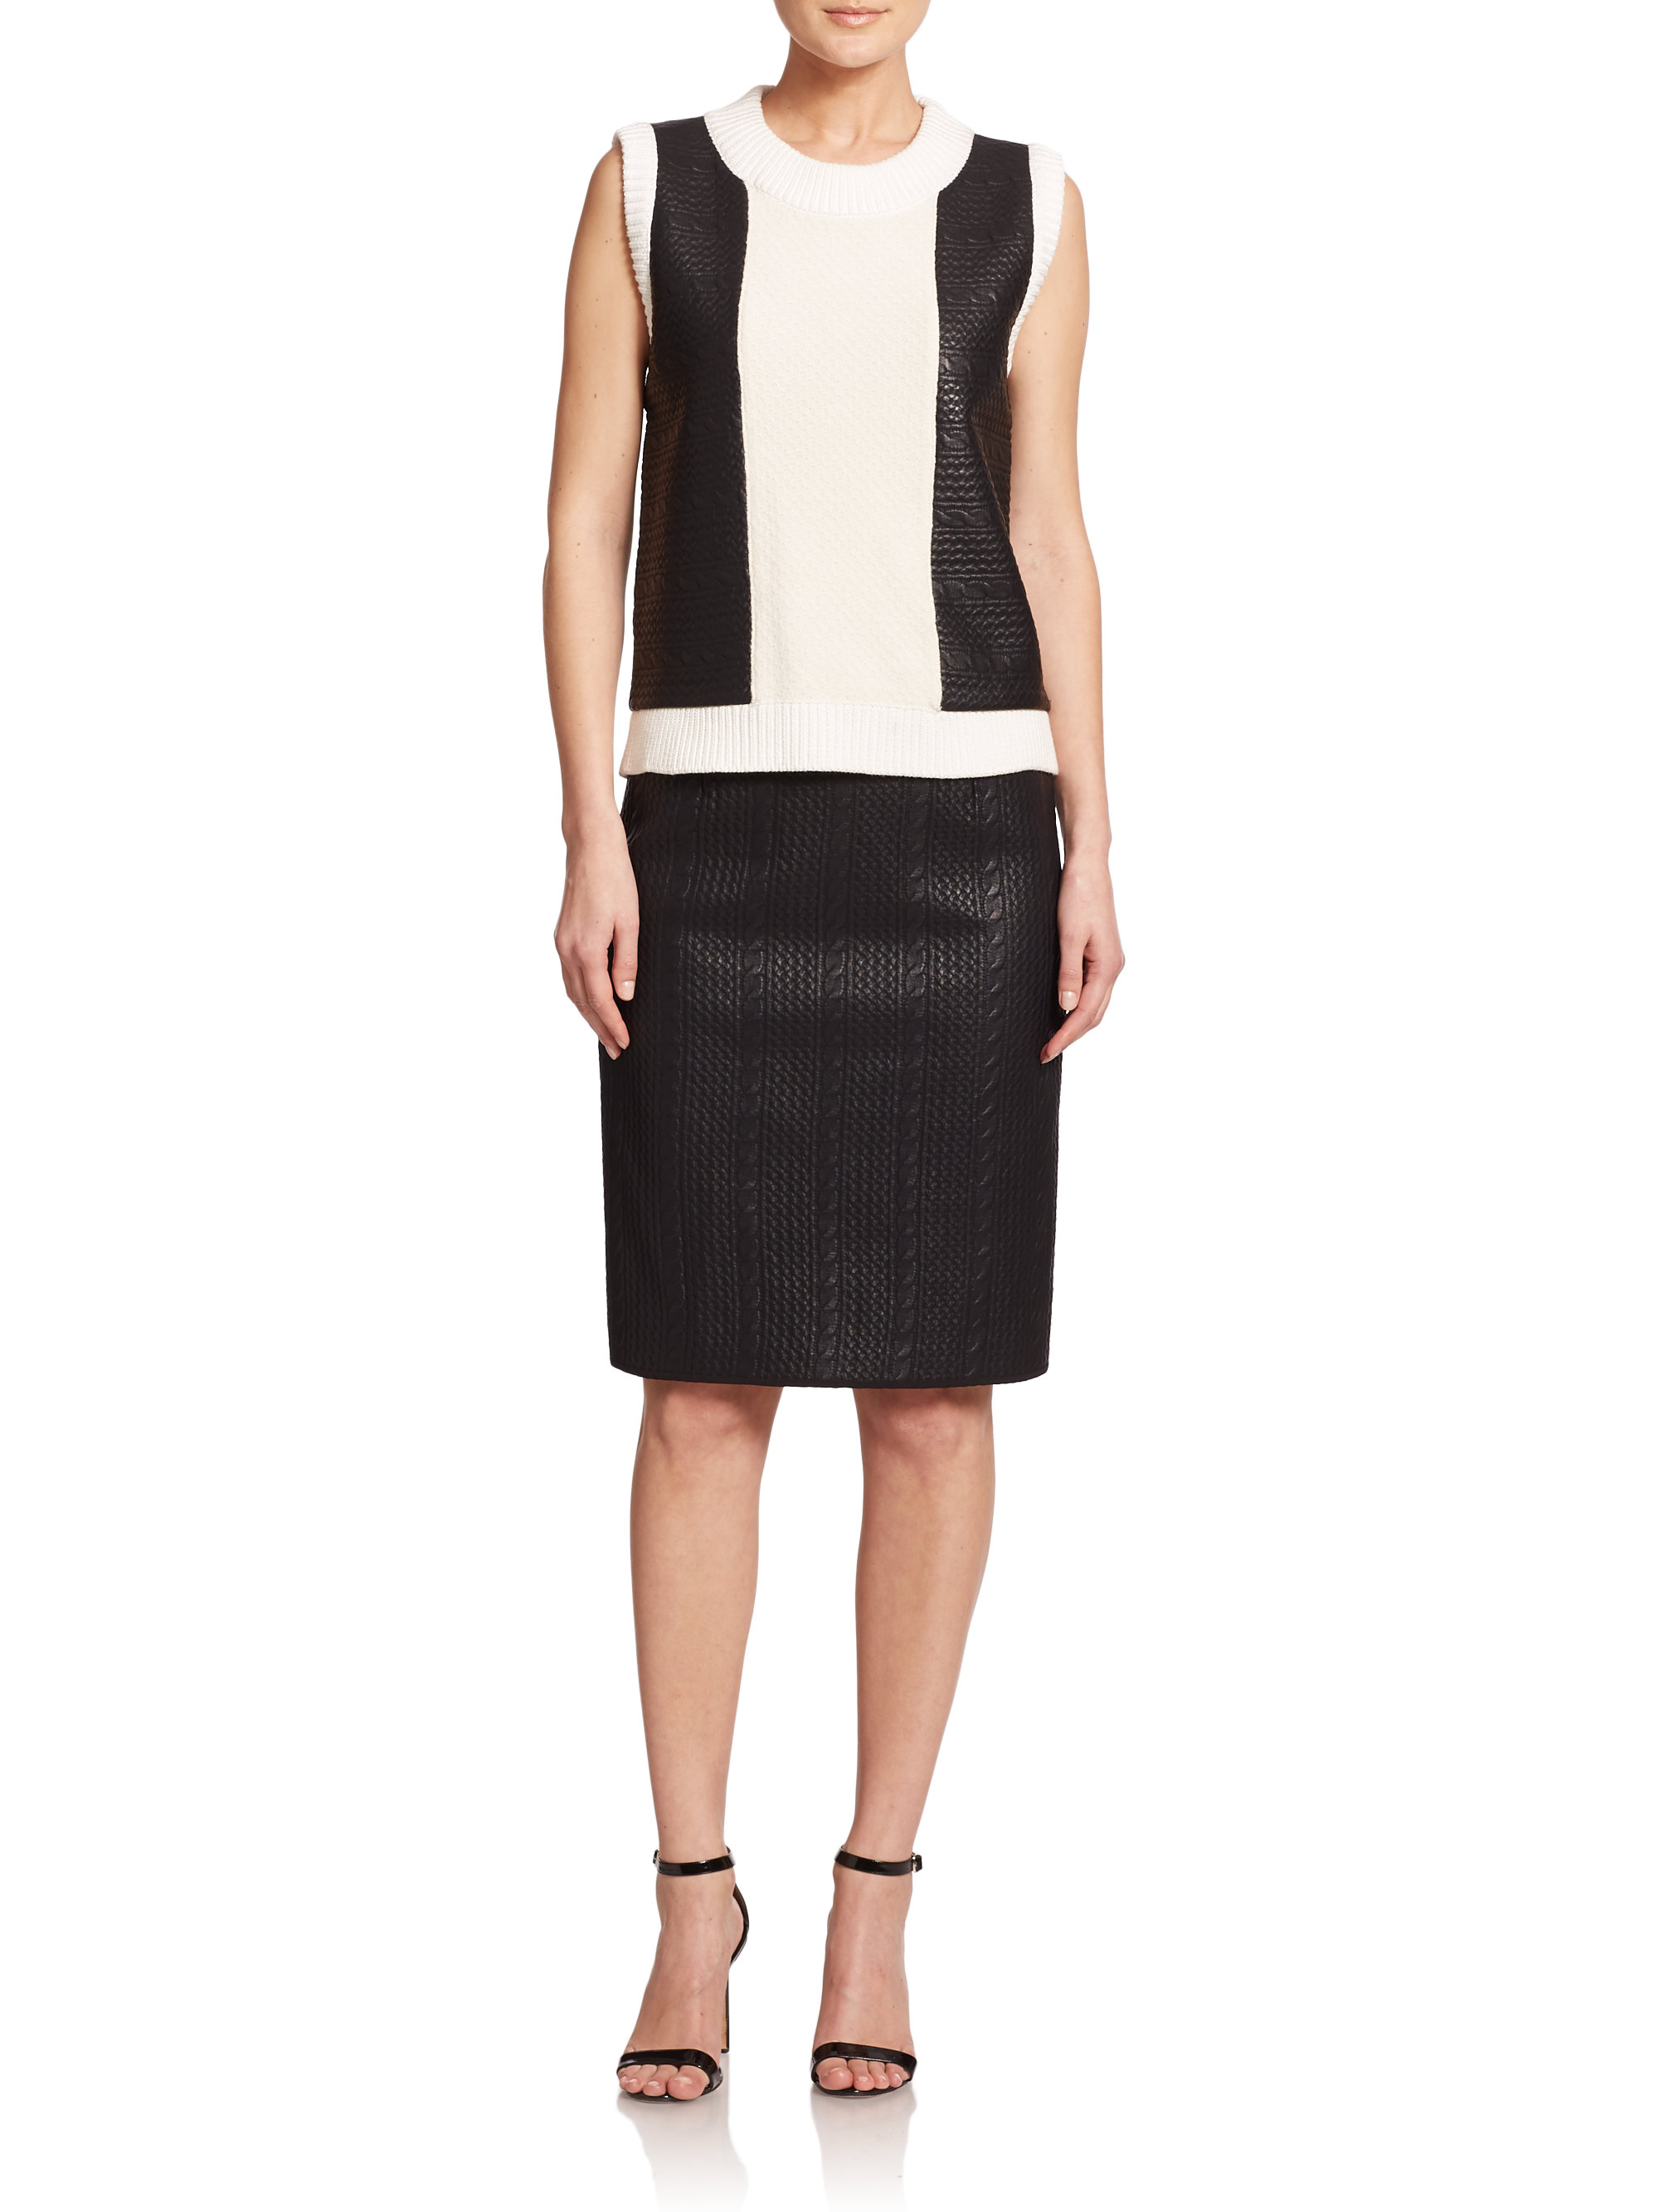 Raoul Knit Cable-pattern Skirt in Black Lyst